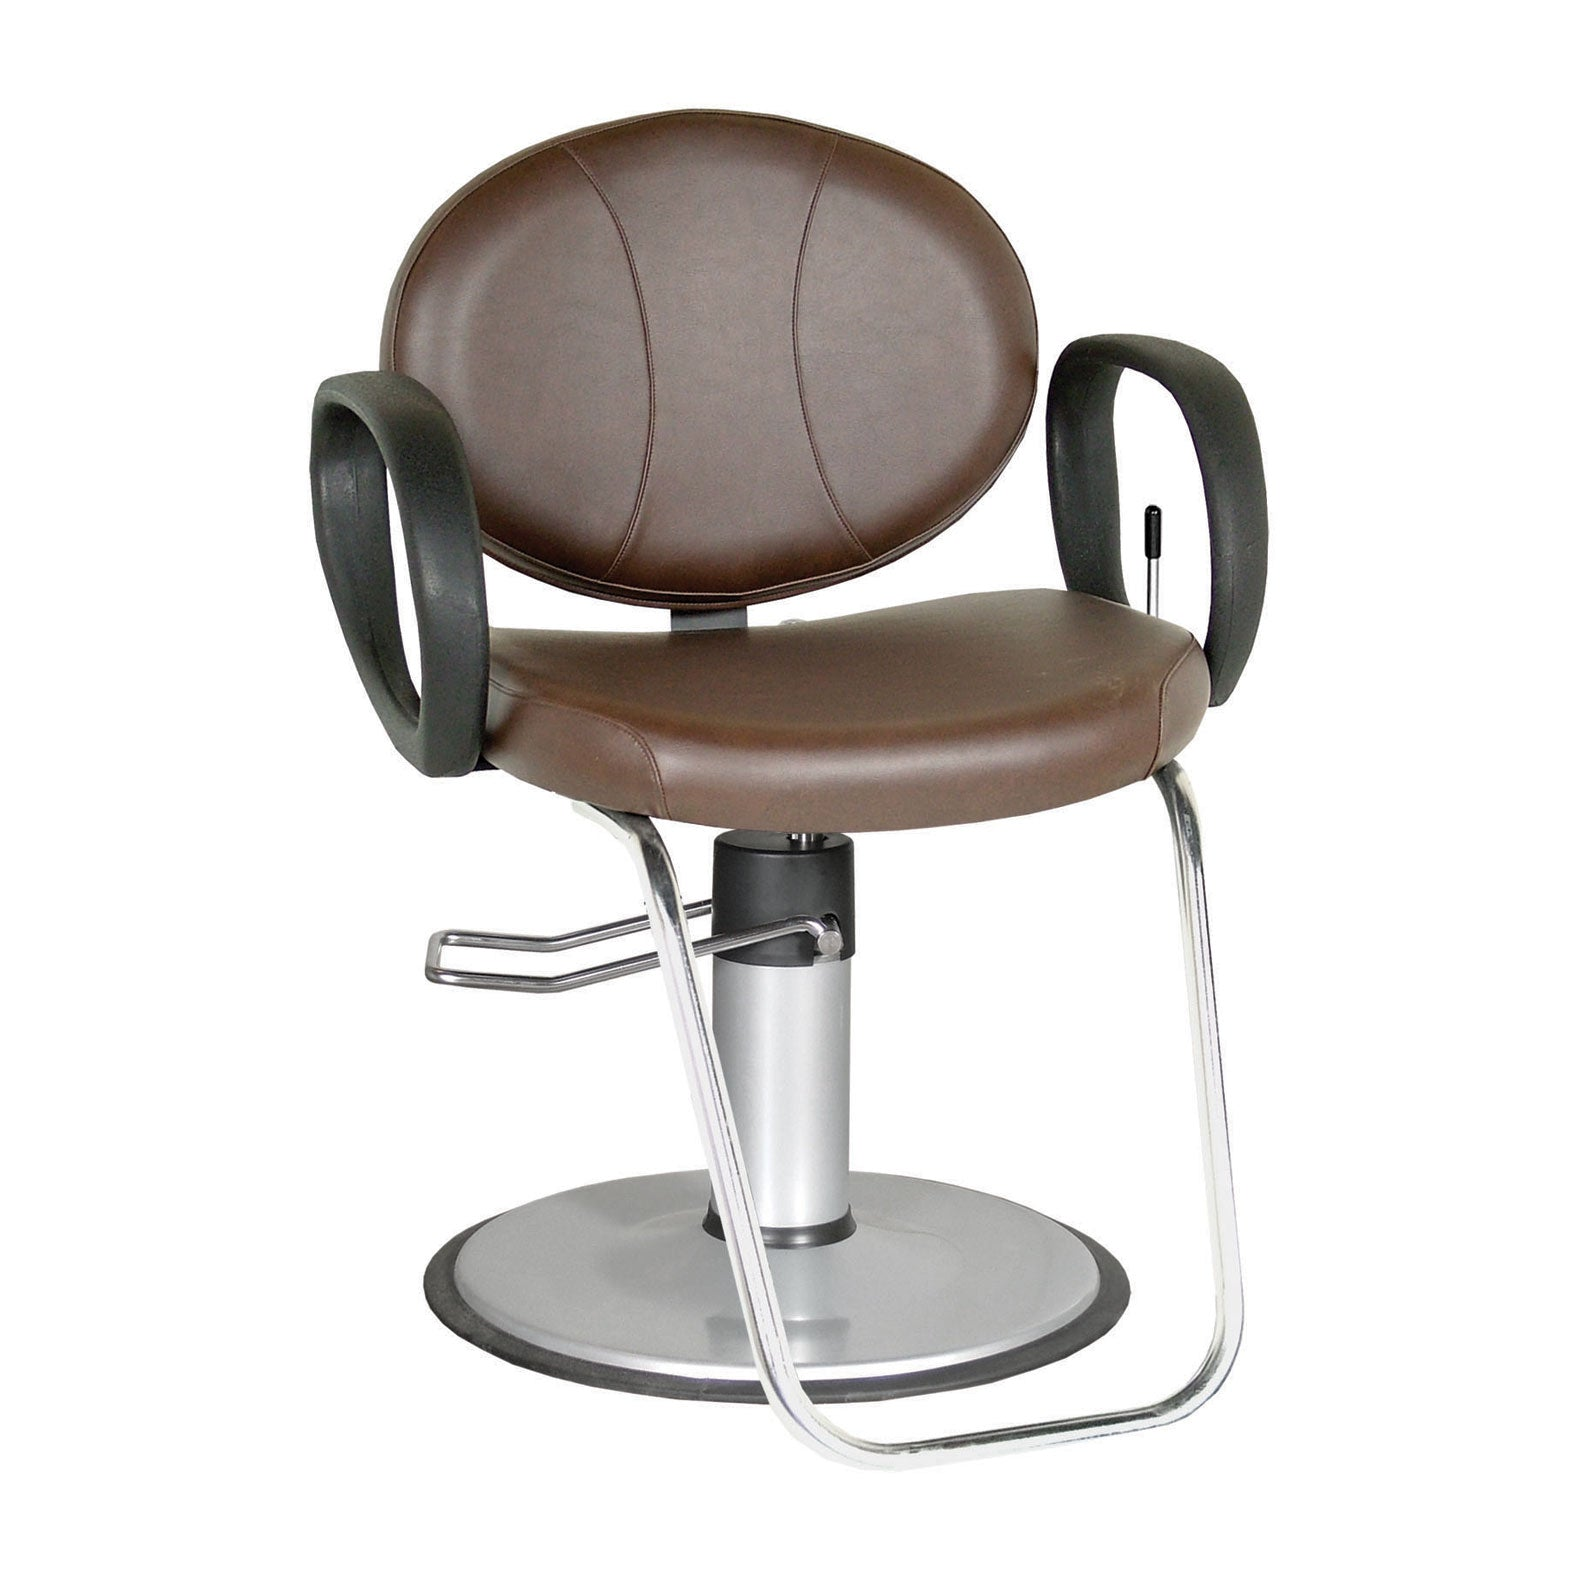 Berra All-Purpose Chair - Collins